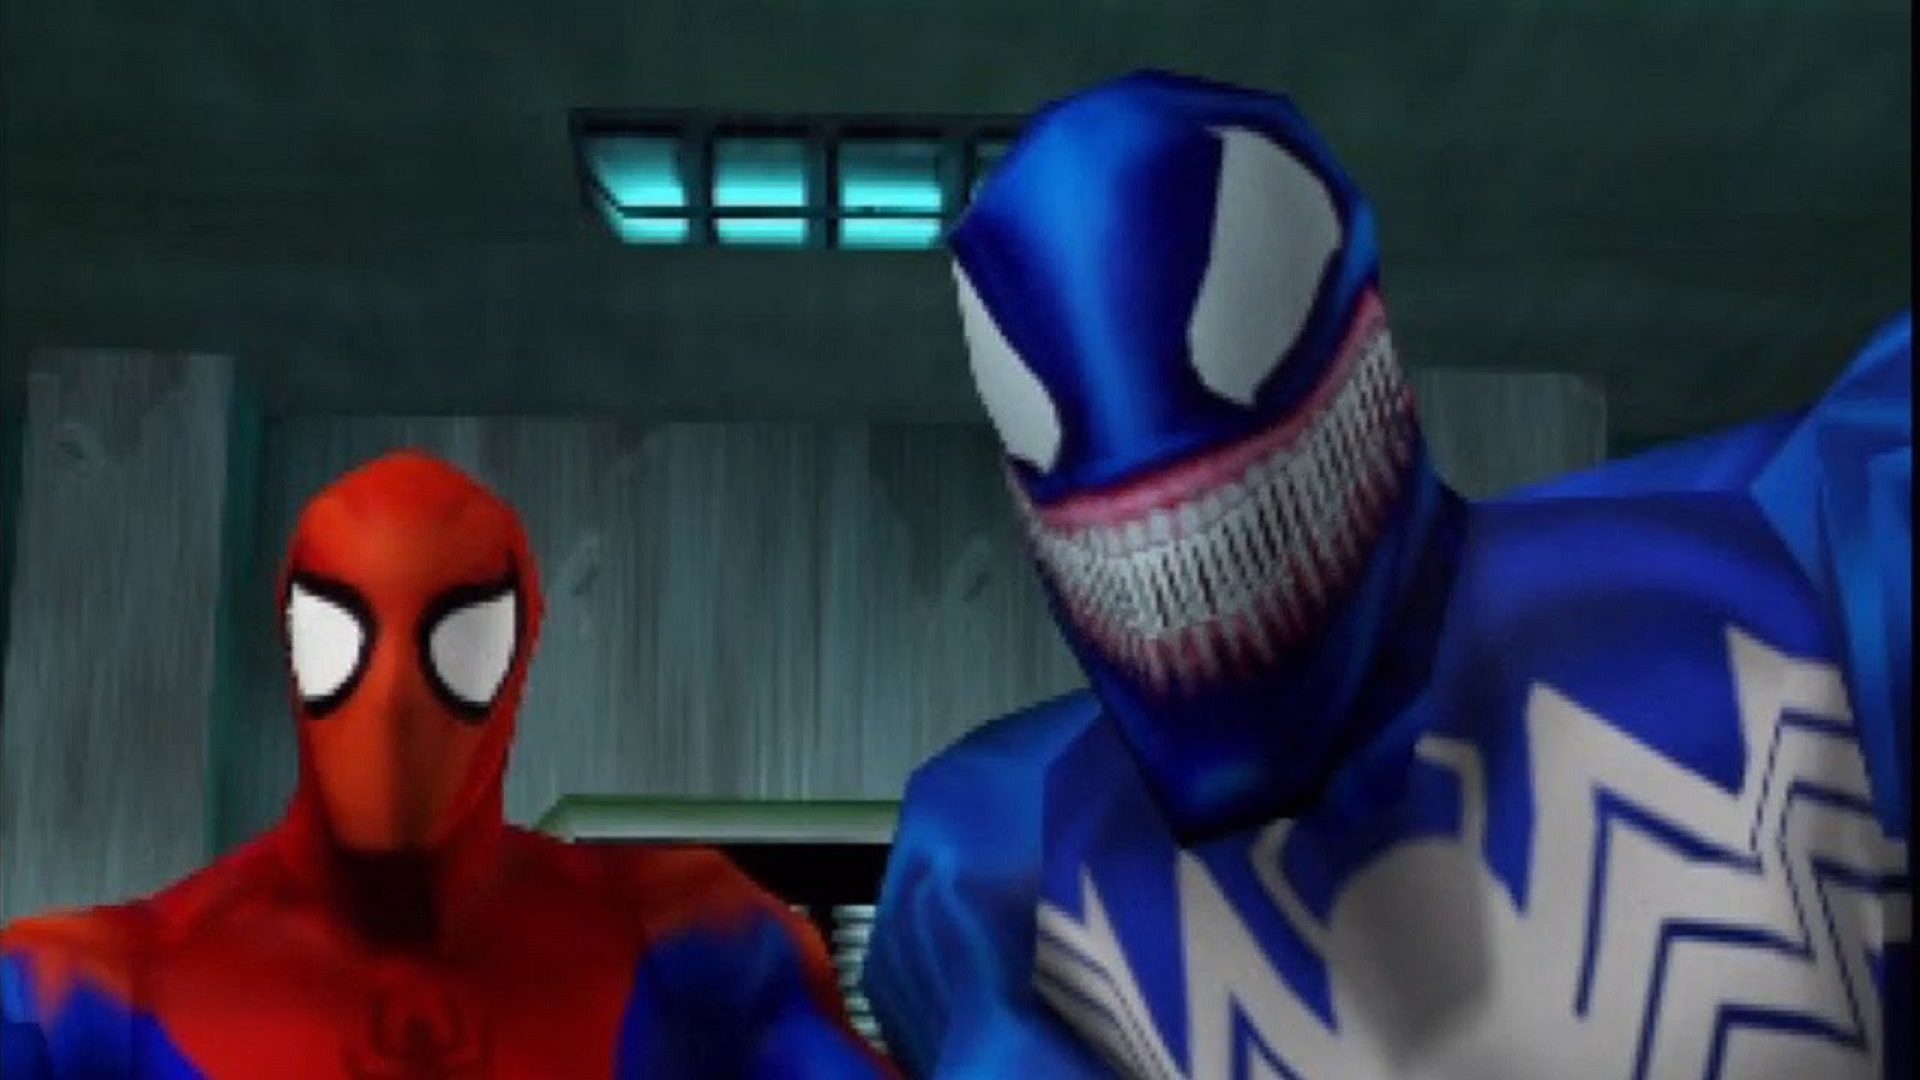 Neversoft's 2000 game  Spider-Man  on the PlayStation, N64, and Dreamcast is one of the most important foundational works in the history of comic book video games, particularly as it related to third-person action offerings. Its importance to its genre is similar to the kind of importance  Superman: The Movie  has to comic book cinema.